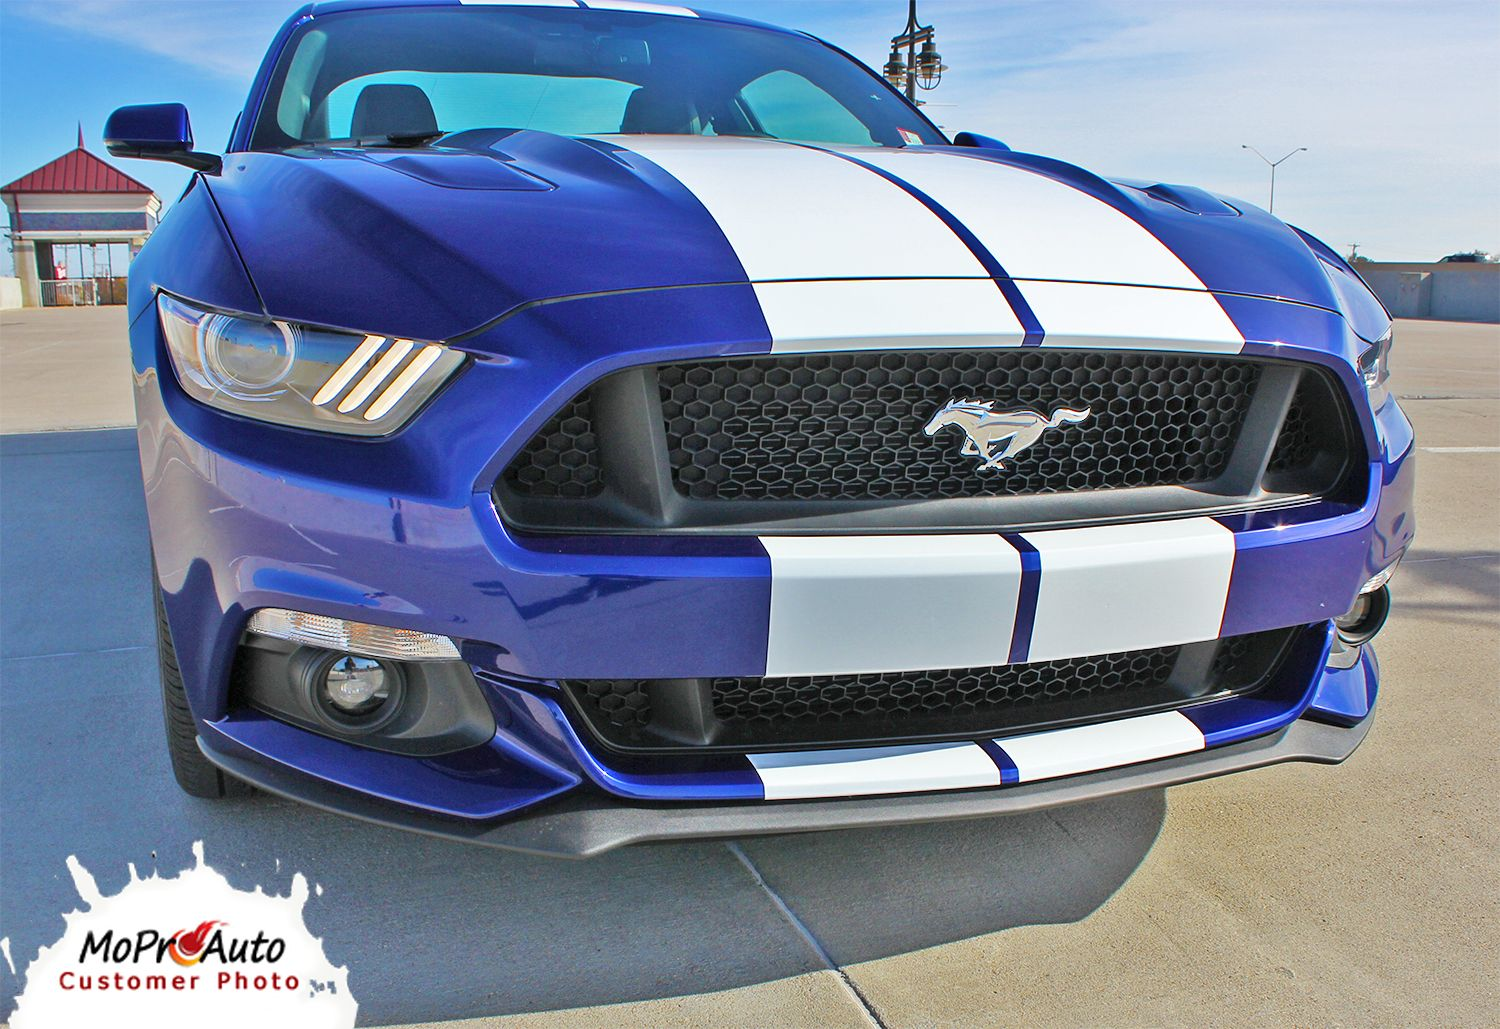 Stallion 2015 ford mustang lemans style racing and rally stripes vinyl graphics kit moproauto